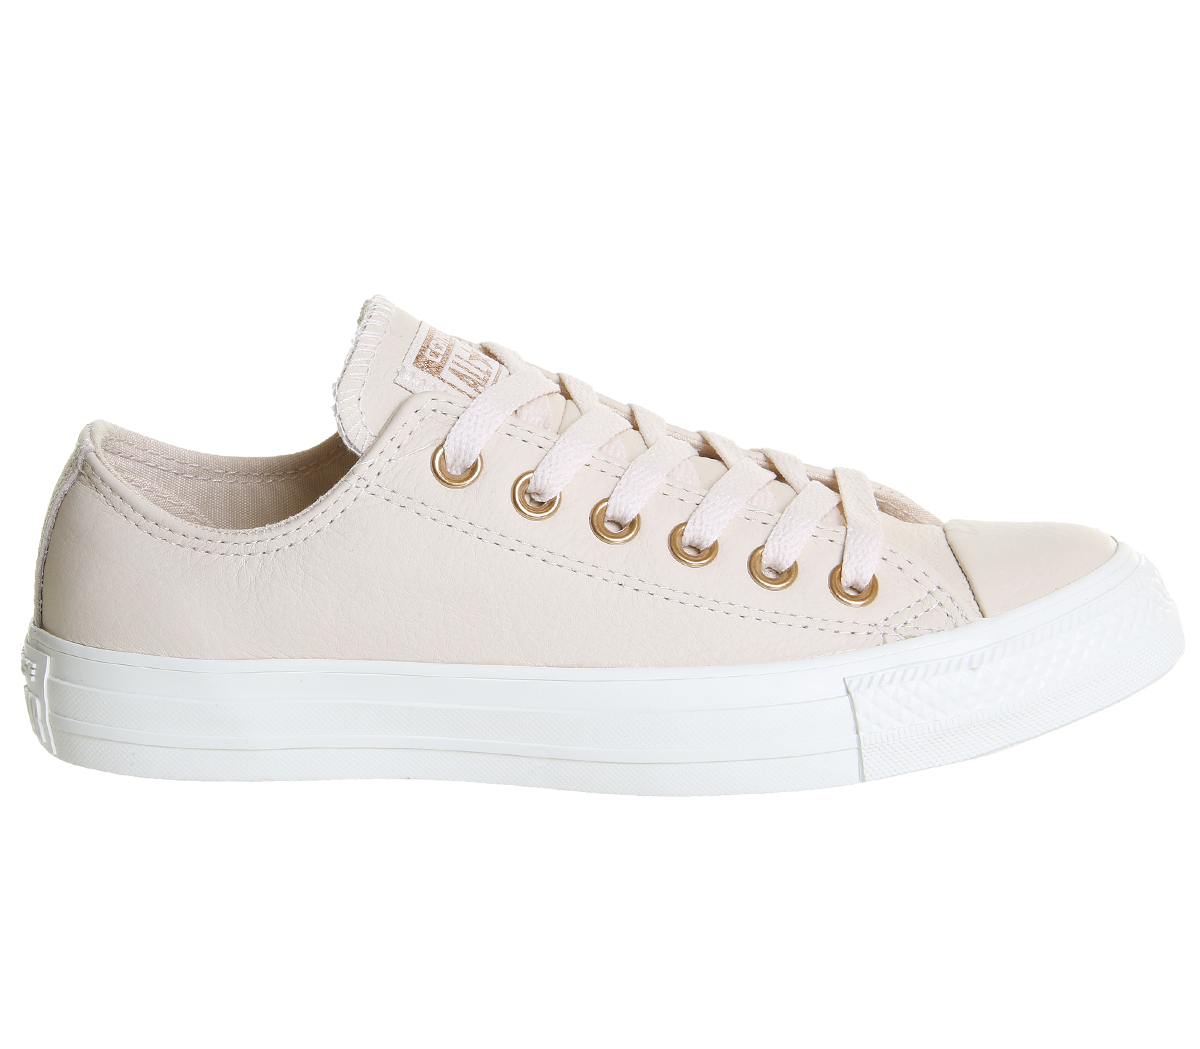 8348b76341dc Sentinel Womens Converse All Star Low Leather EGRET PASTEL ROSE TAN BLUSH  GOLD EXCLUSIVE